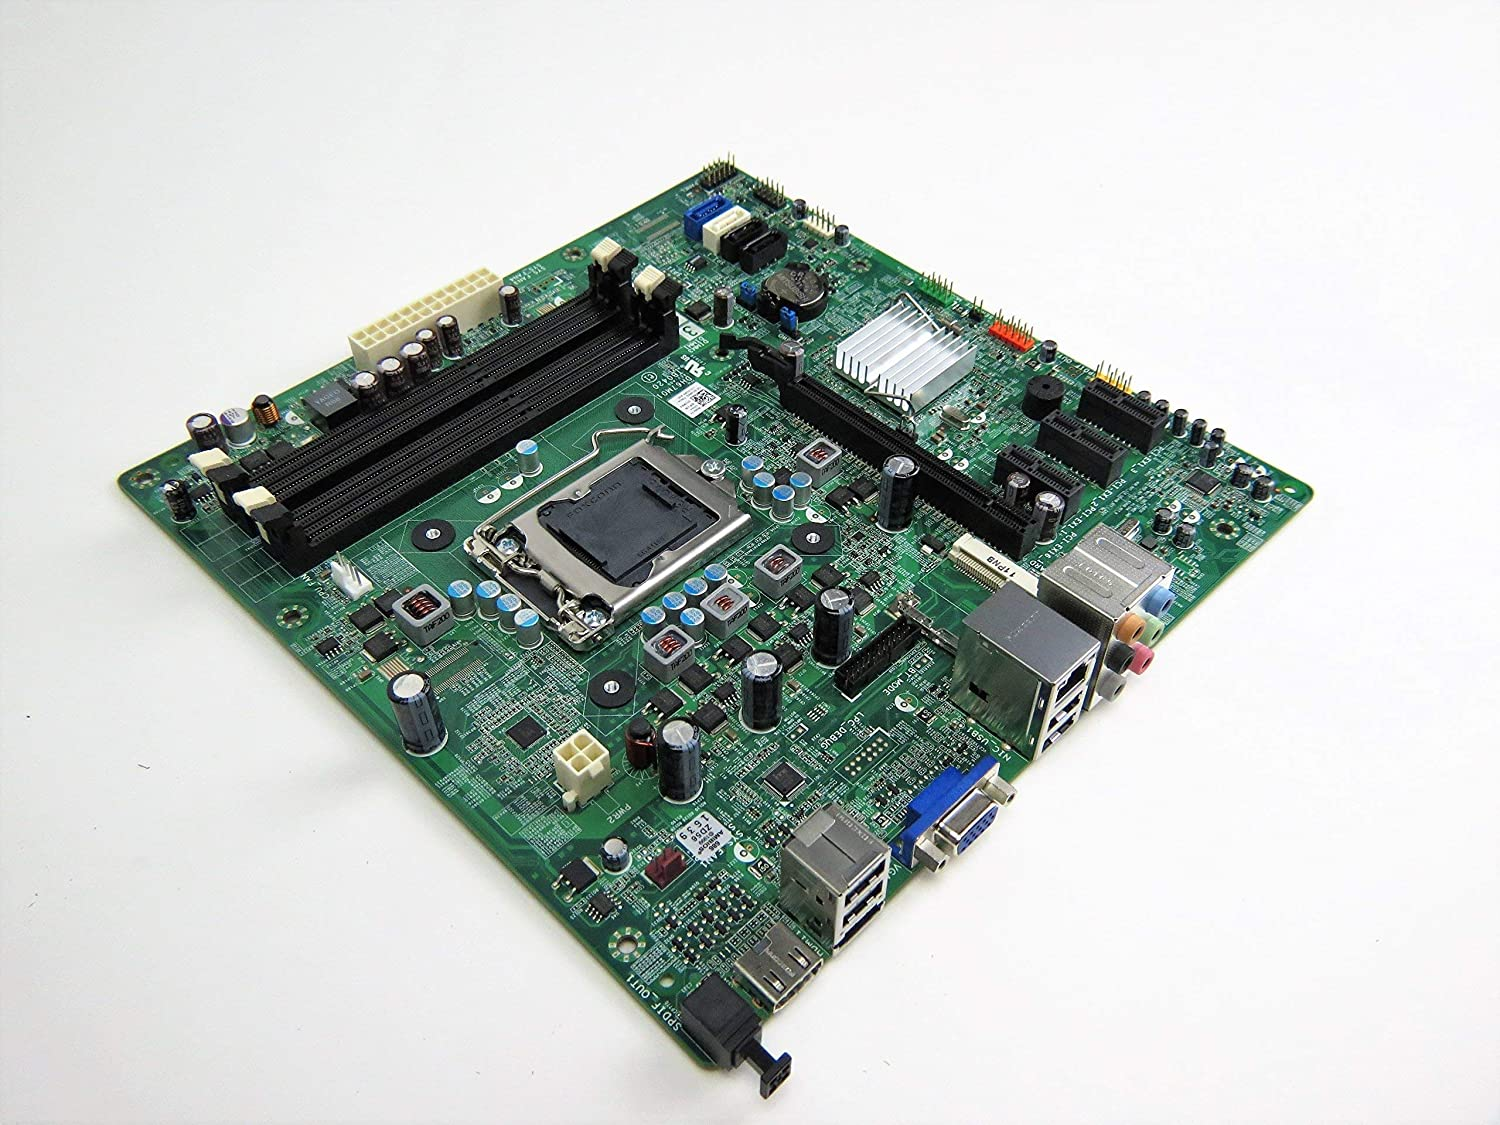 Sparepart: Dell Motherboard, Y2MRG (Renewed)